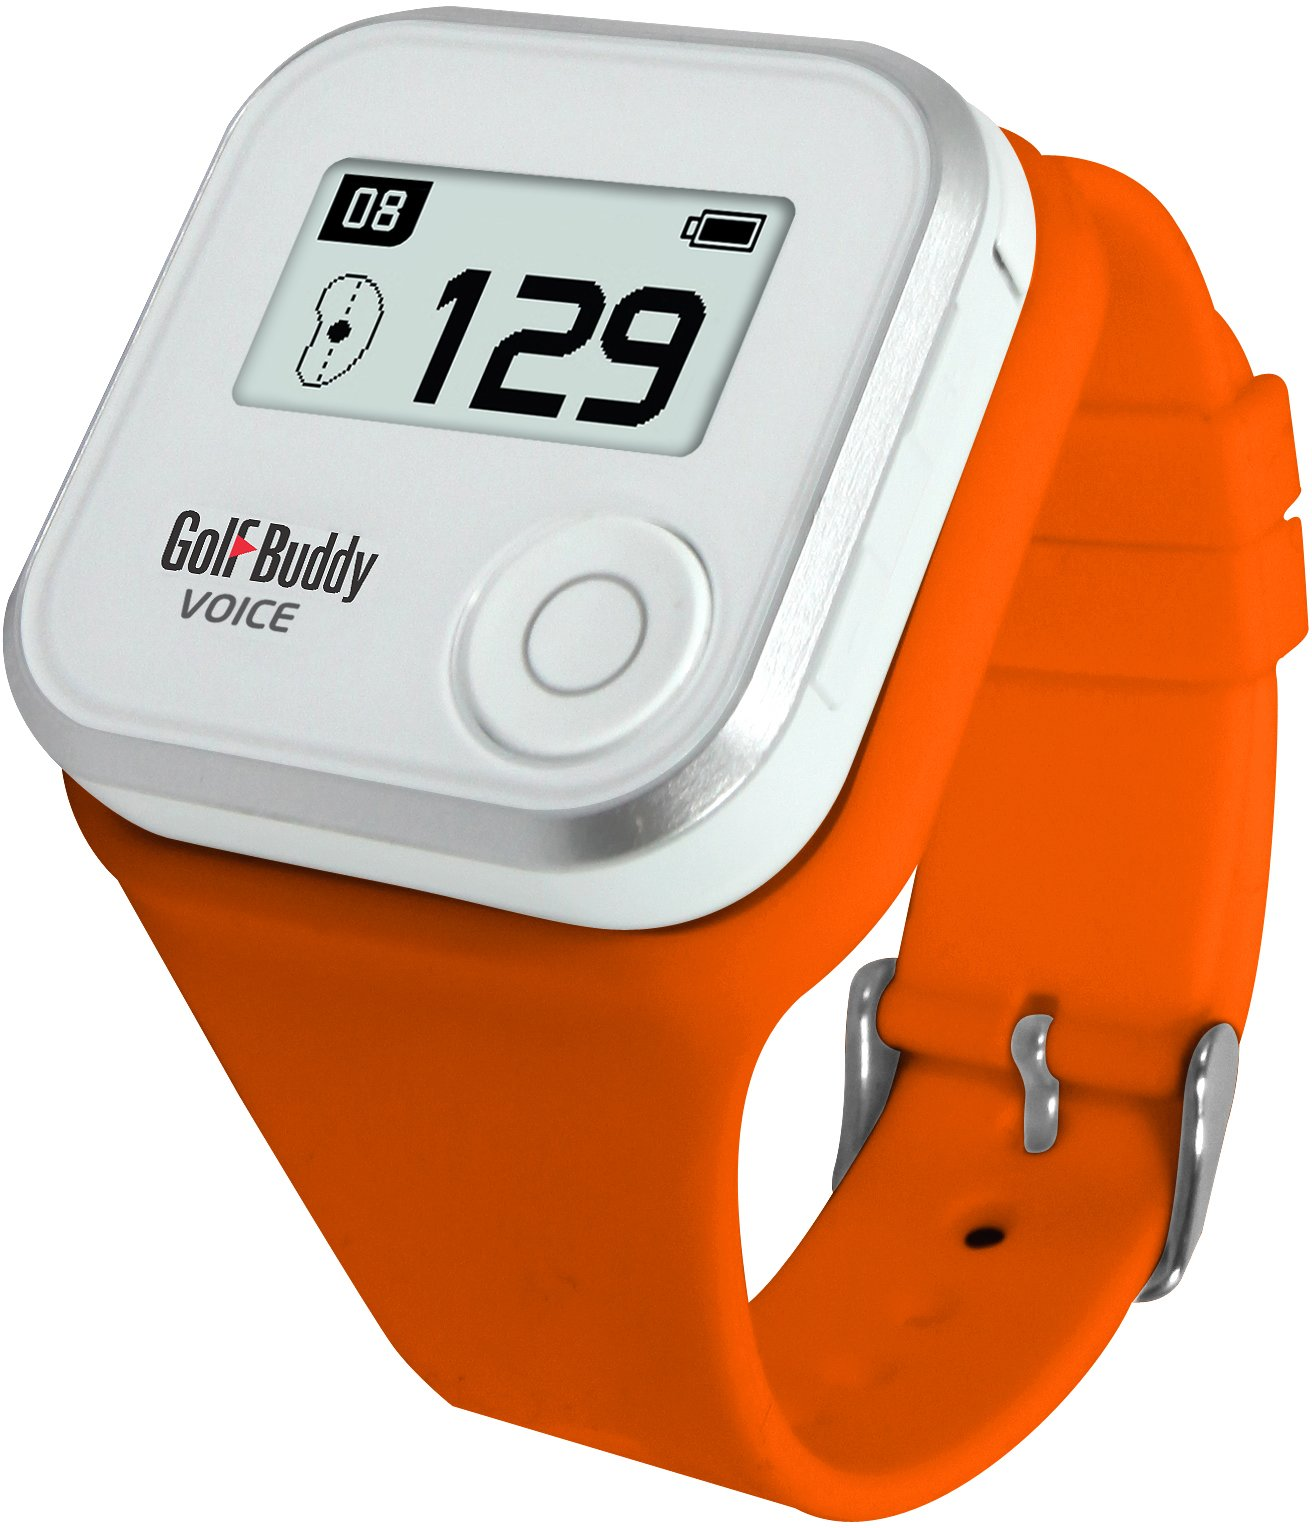 GolfBuddy Wristband for GPS Rangefinder Voice, Small, Orange by GolfBuddy